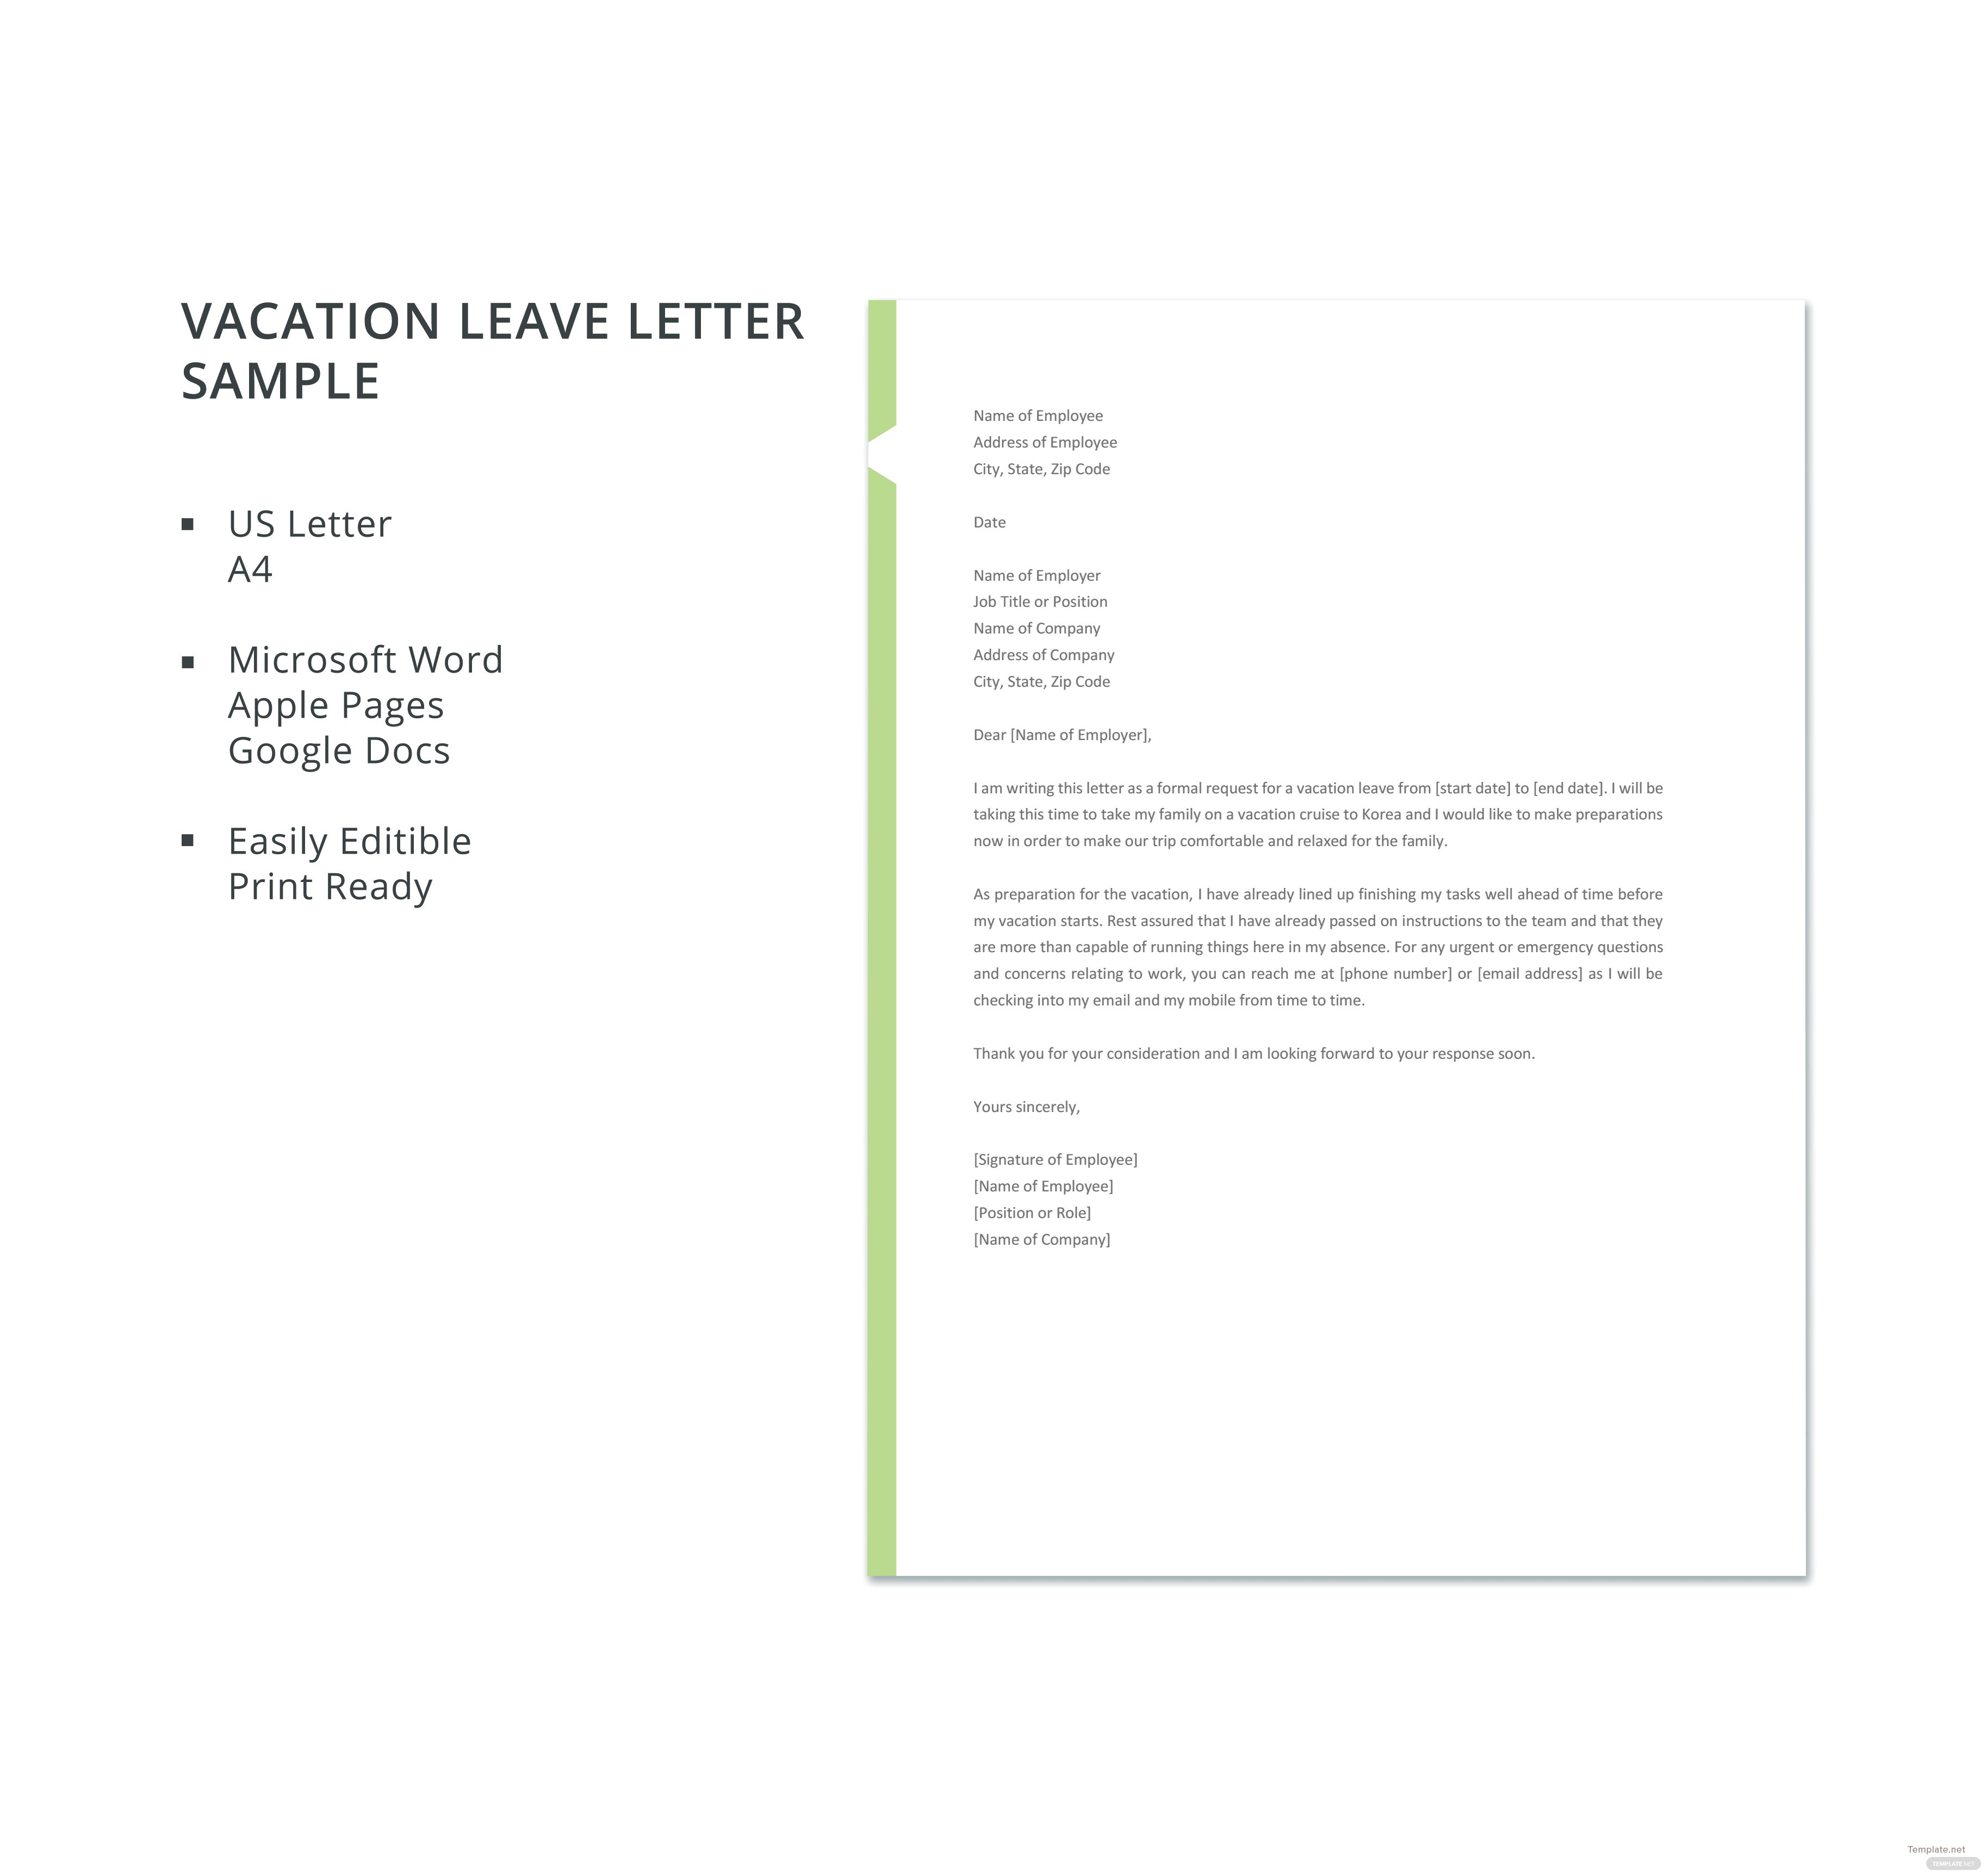 Vacation leave letter sample template in microsoft word apple pages click to see full template vacation leave letter sample altavistaventures Images